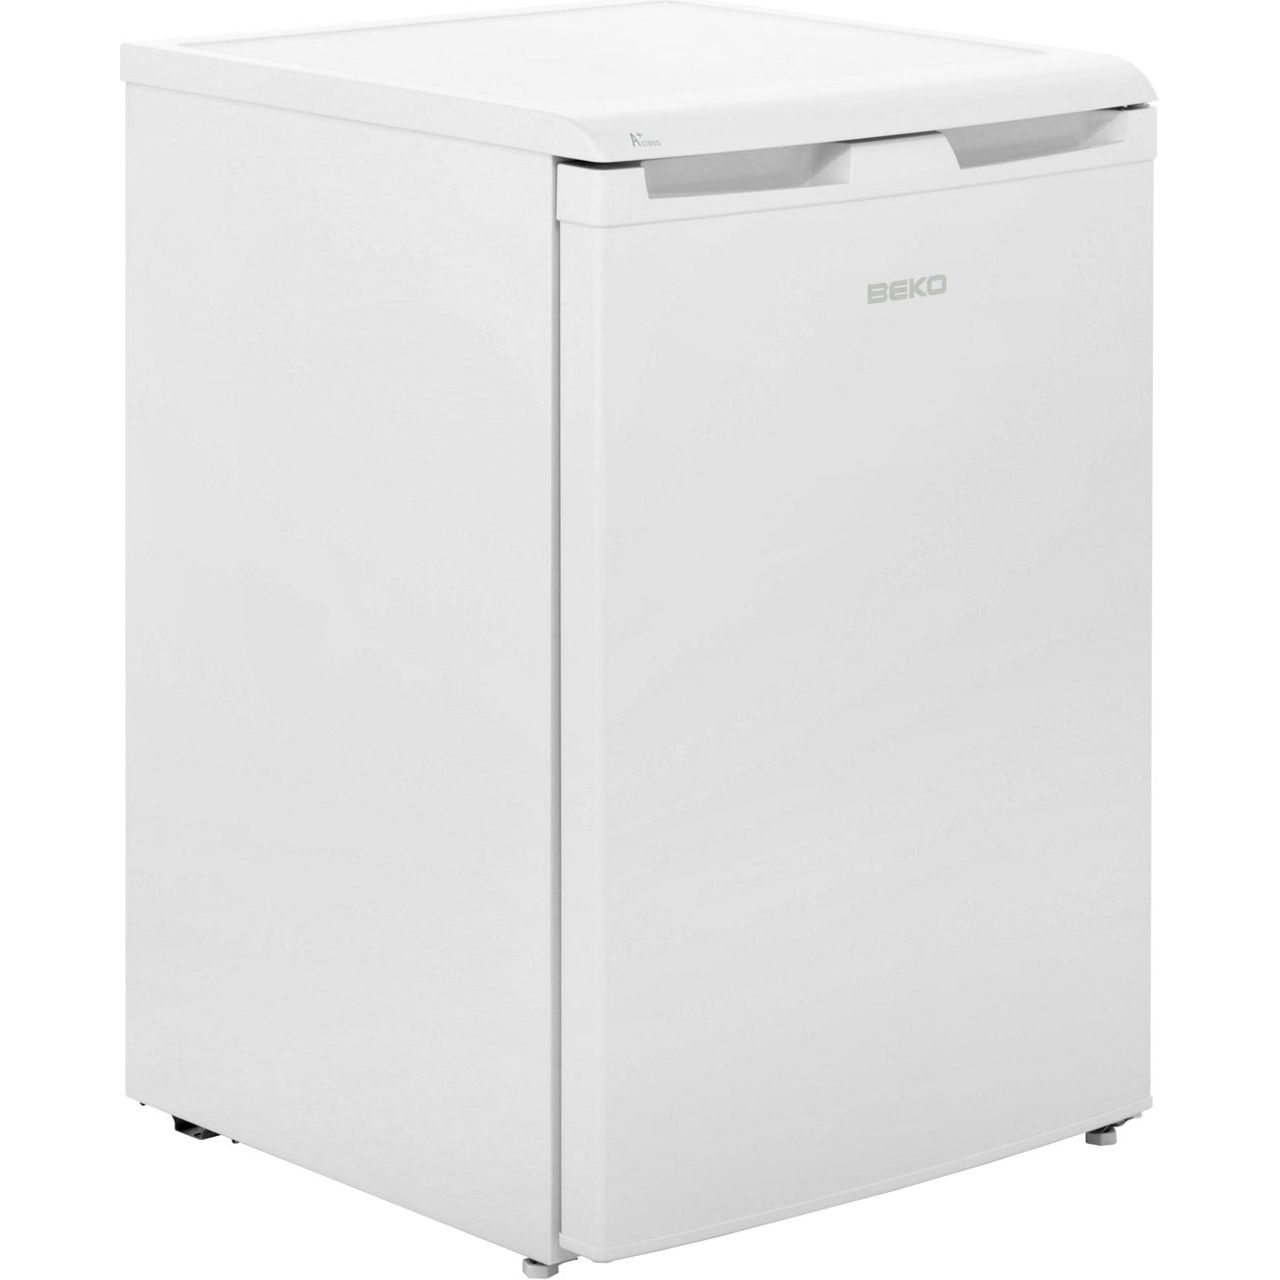 Beko UL584APW Free Standing Larder Fridge in White